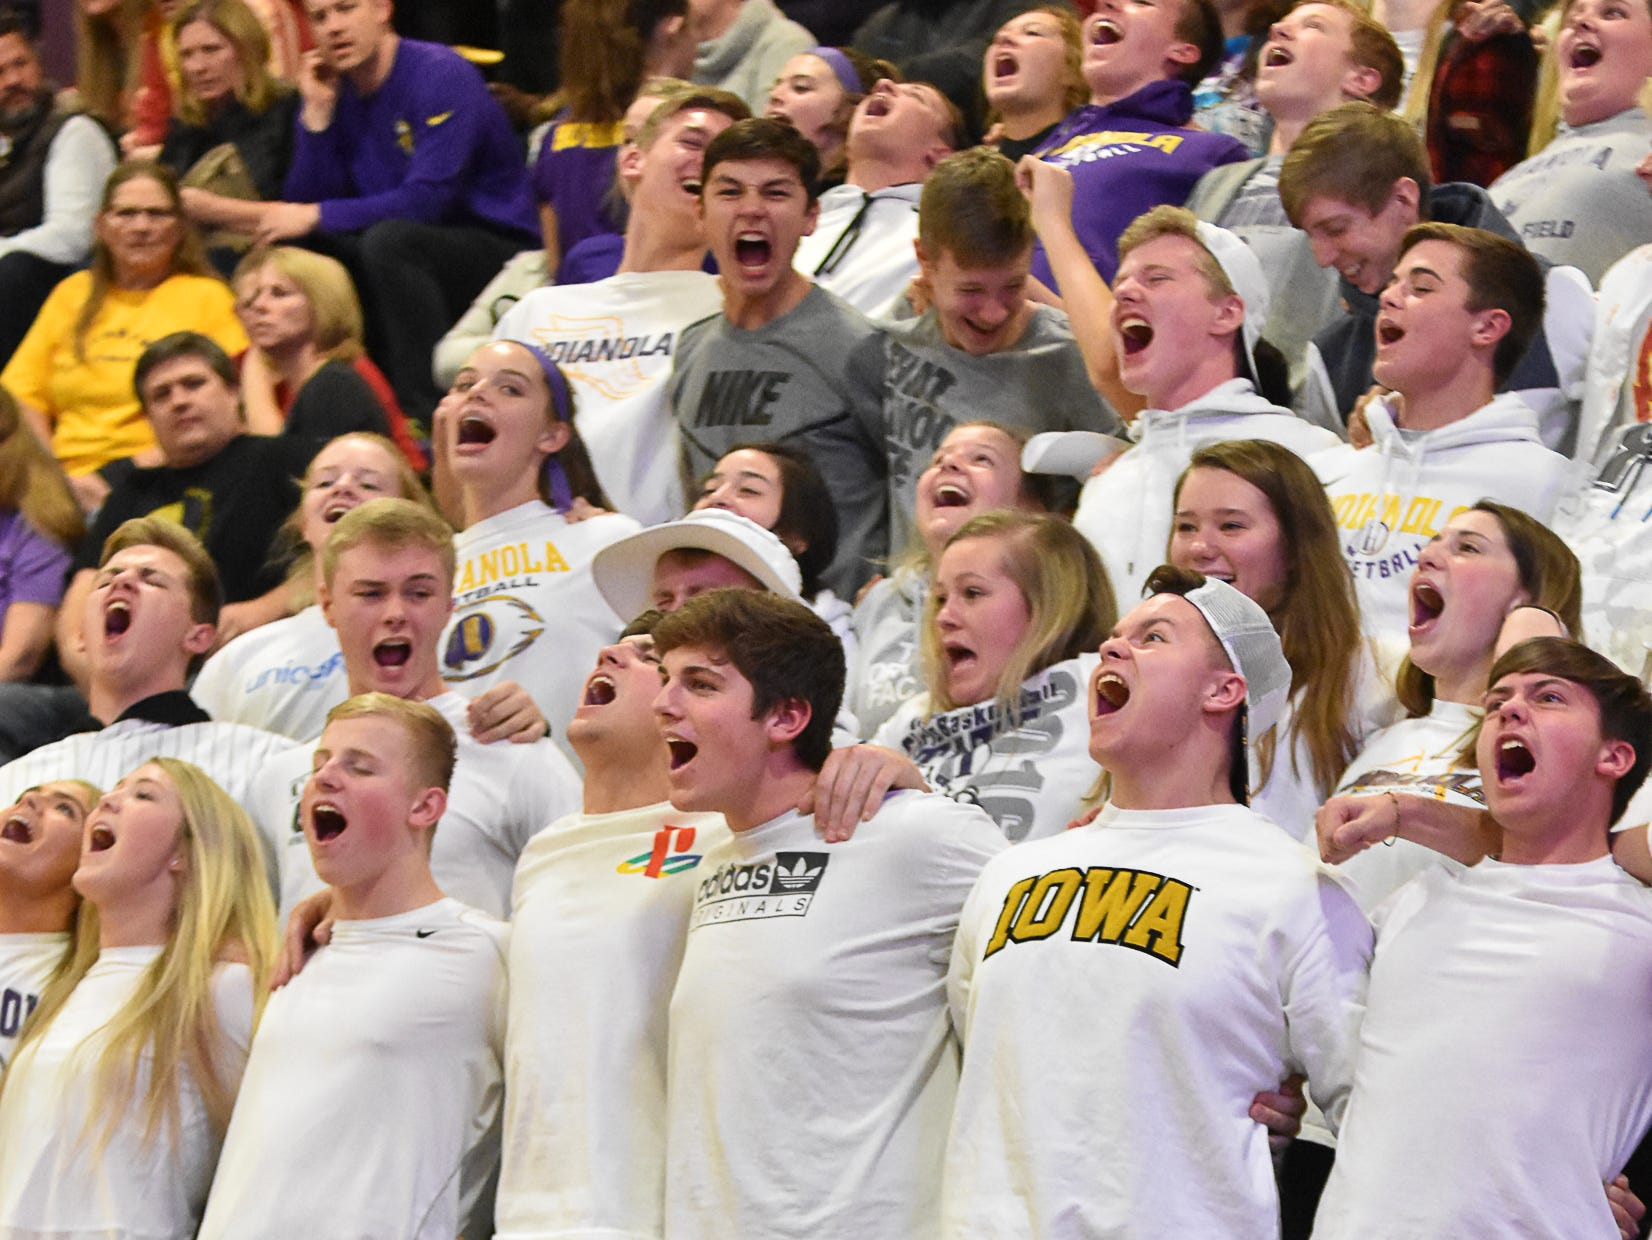 Indianola students cheer for their team. The Indianola boys slipped to 1-1 on the season with a 65-48 home loss to Norwalk on Nov. 30, 2018.